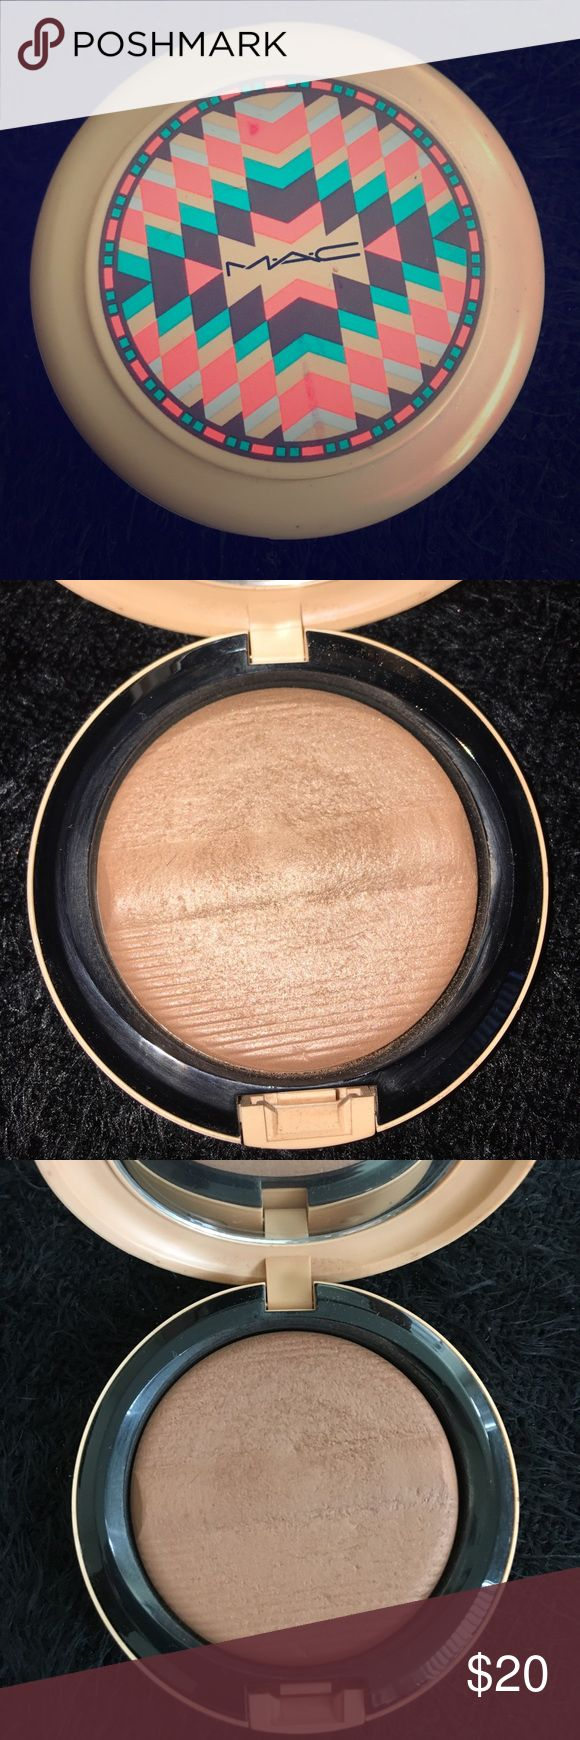 LE MAC bronzer from Vibe Tribe Collection Used Makeup Bronzer